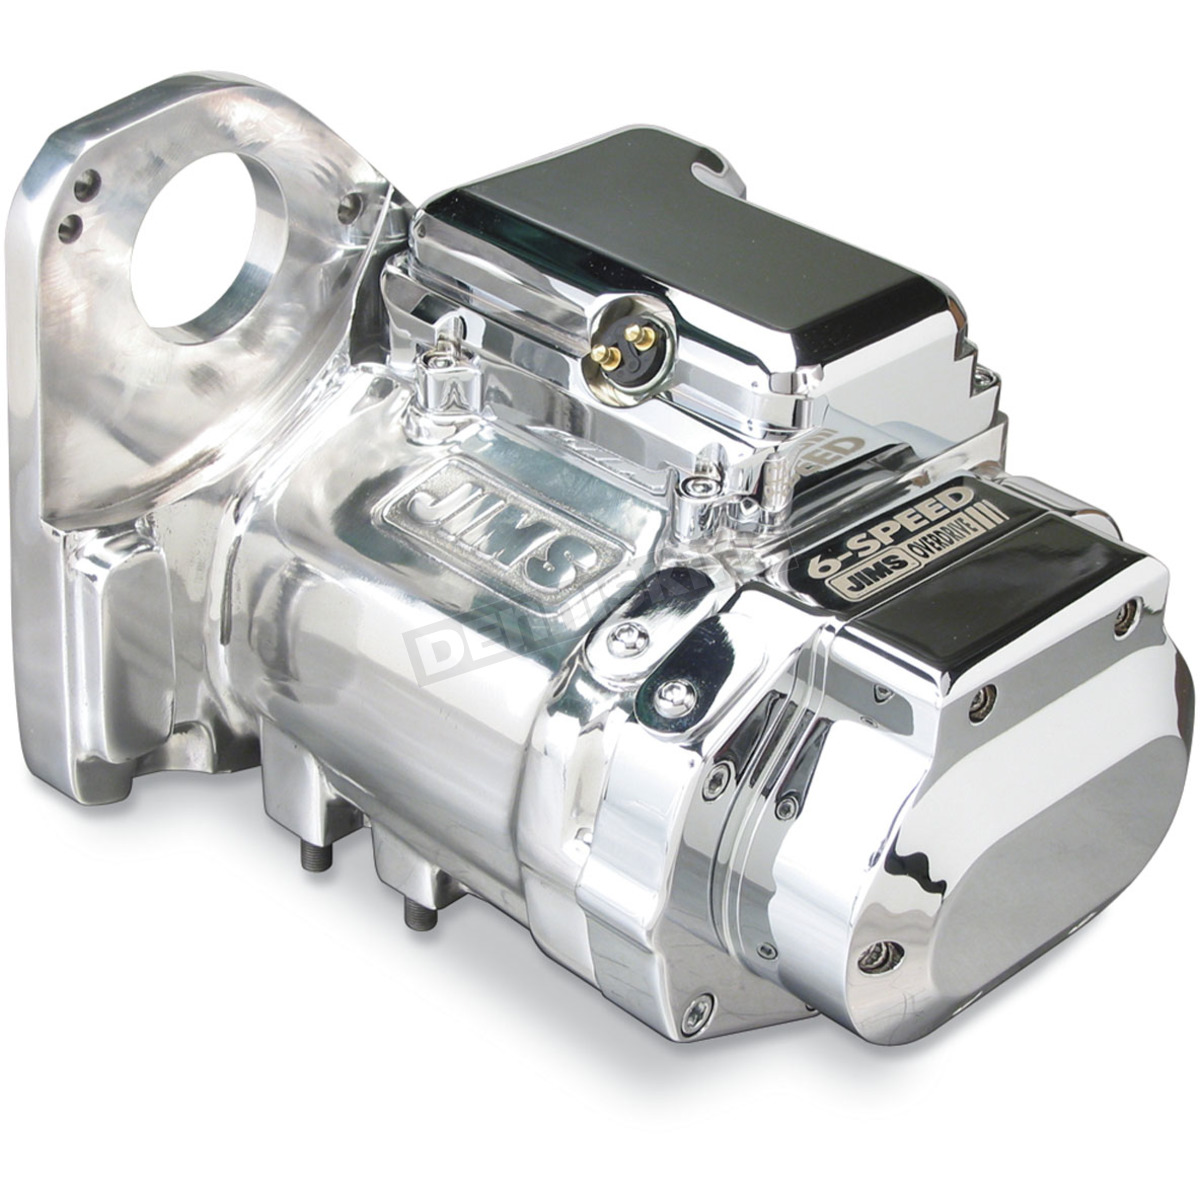 Polished Aluminum Finish 6-Speed Overdrive Transmission with Clean-Cut  Gears - 8004C6